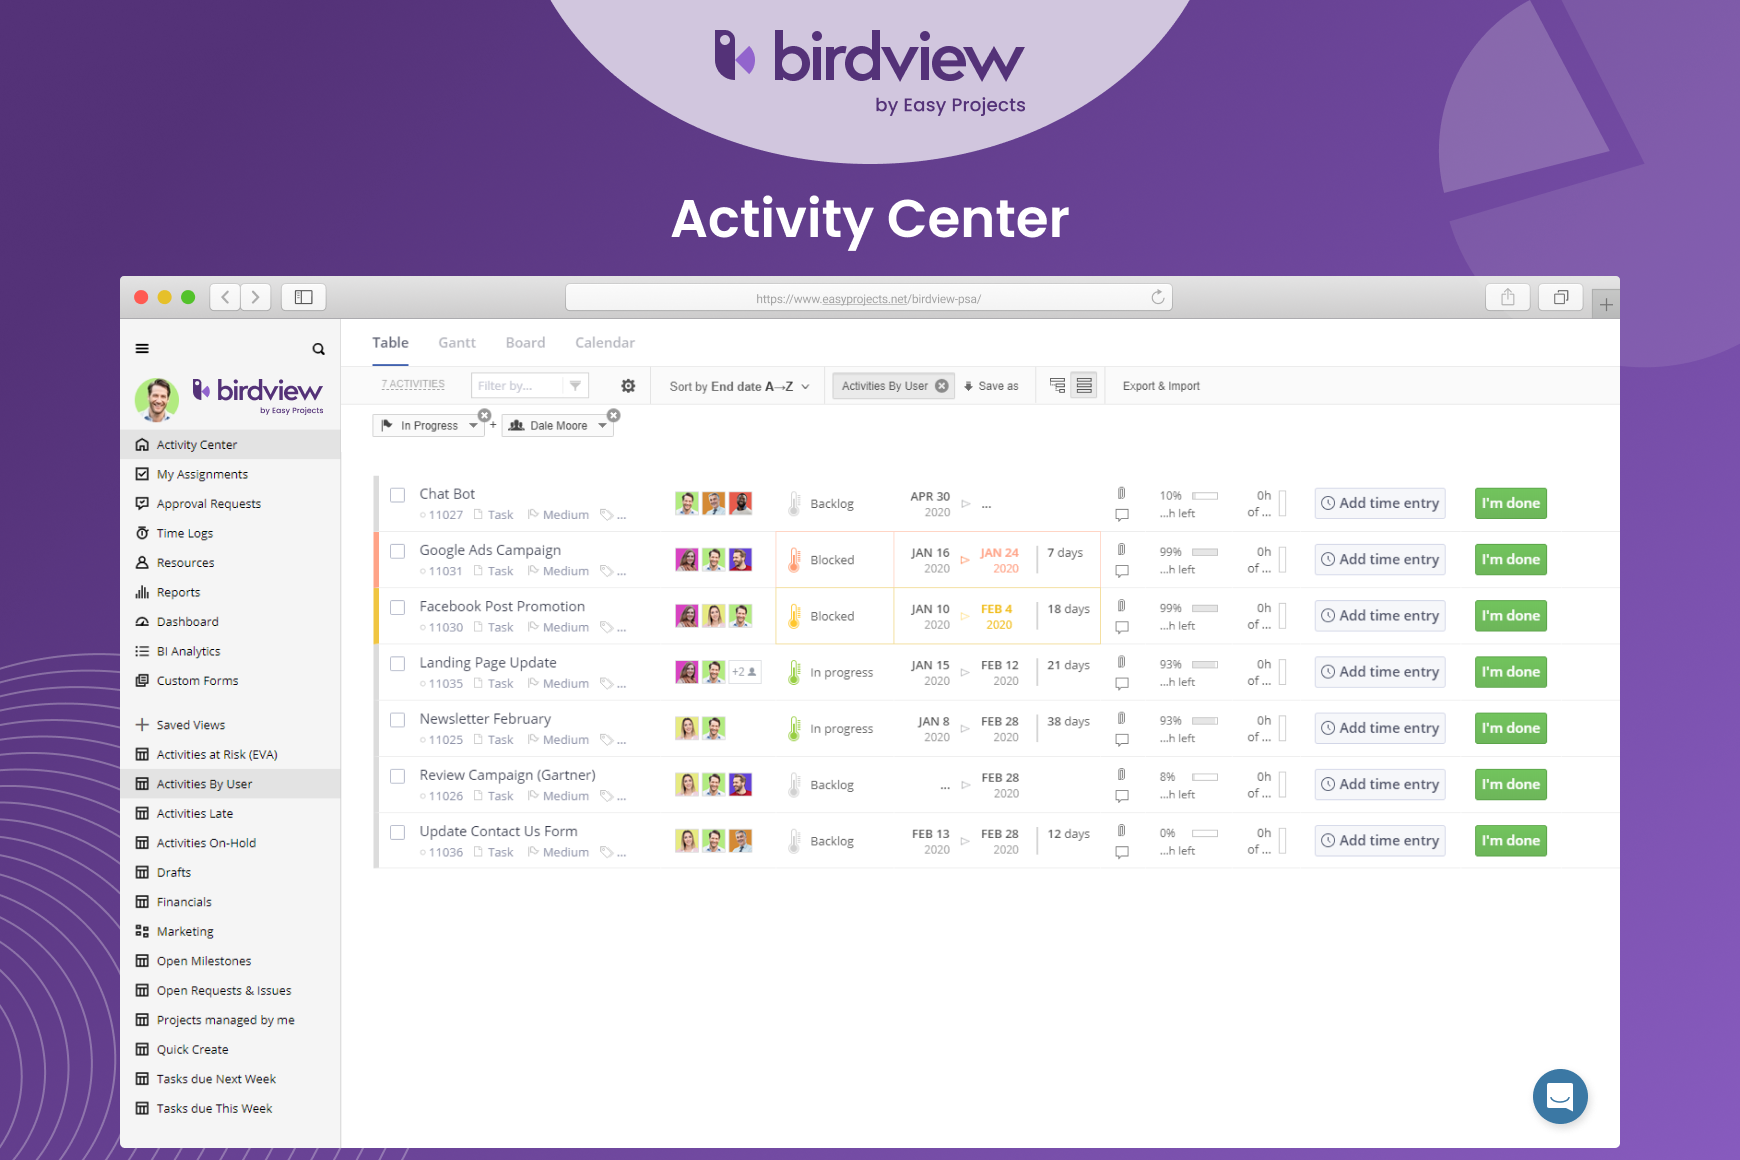 Birdview PSA - Main page of the Activity Center.